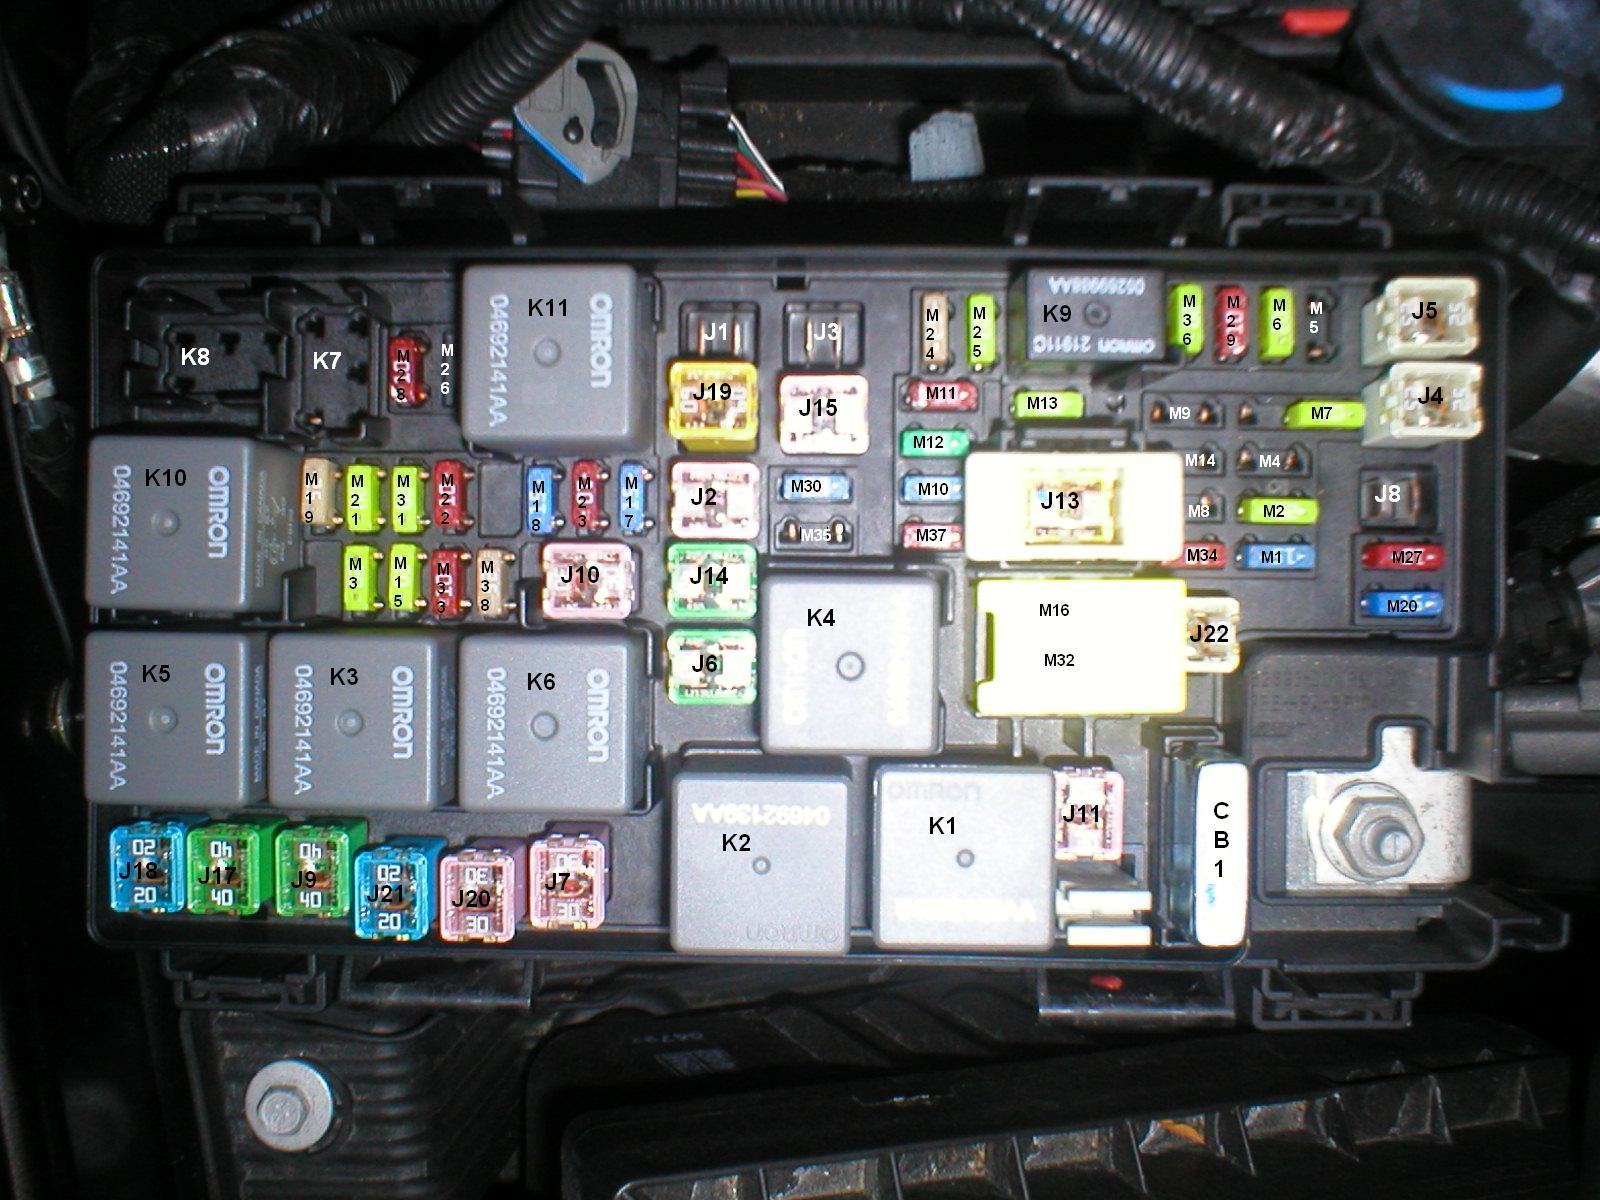 hight resolution of jeep jk fuse box map layout diagram jeepforum com 2013 hyundai genesis fuse box fuse box jeep wrangler 2013